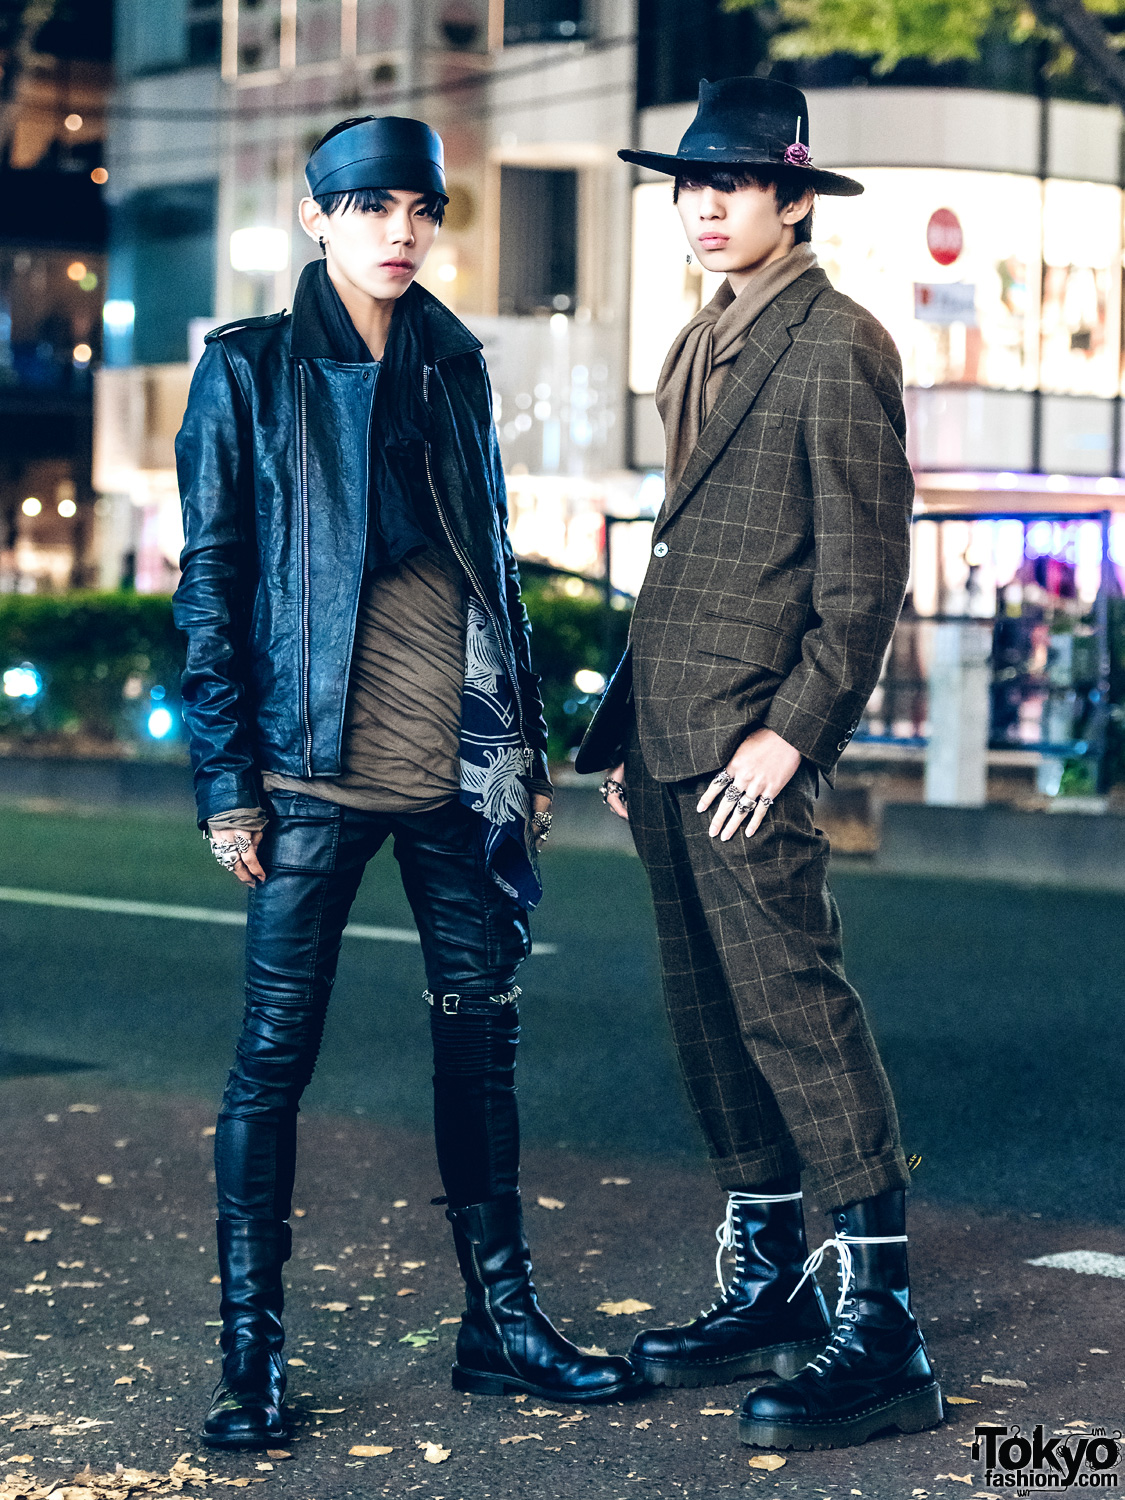 Black Leather Amp Plaid Suit Japanese Street Styles W Rick